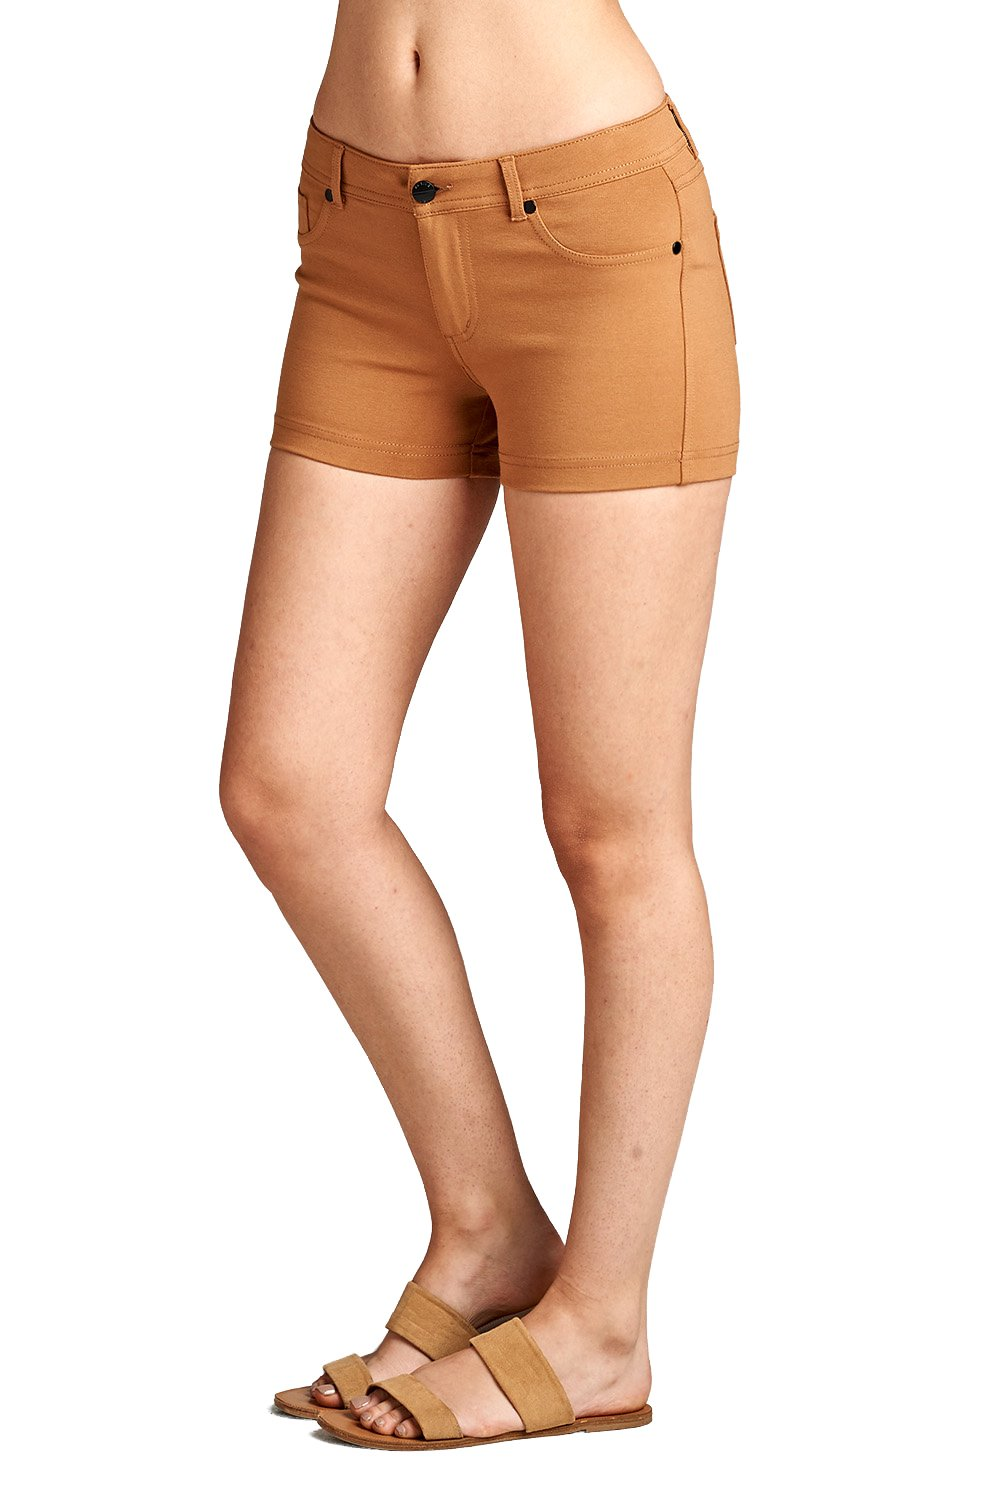 Emmalise Women's Summer Casual Stretchy Shorts-Baked Mustard-L